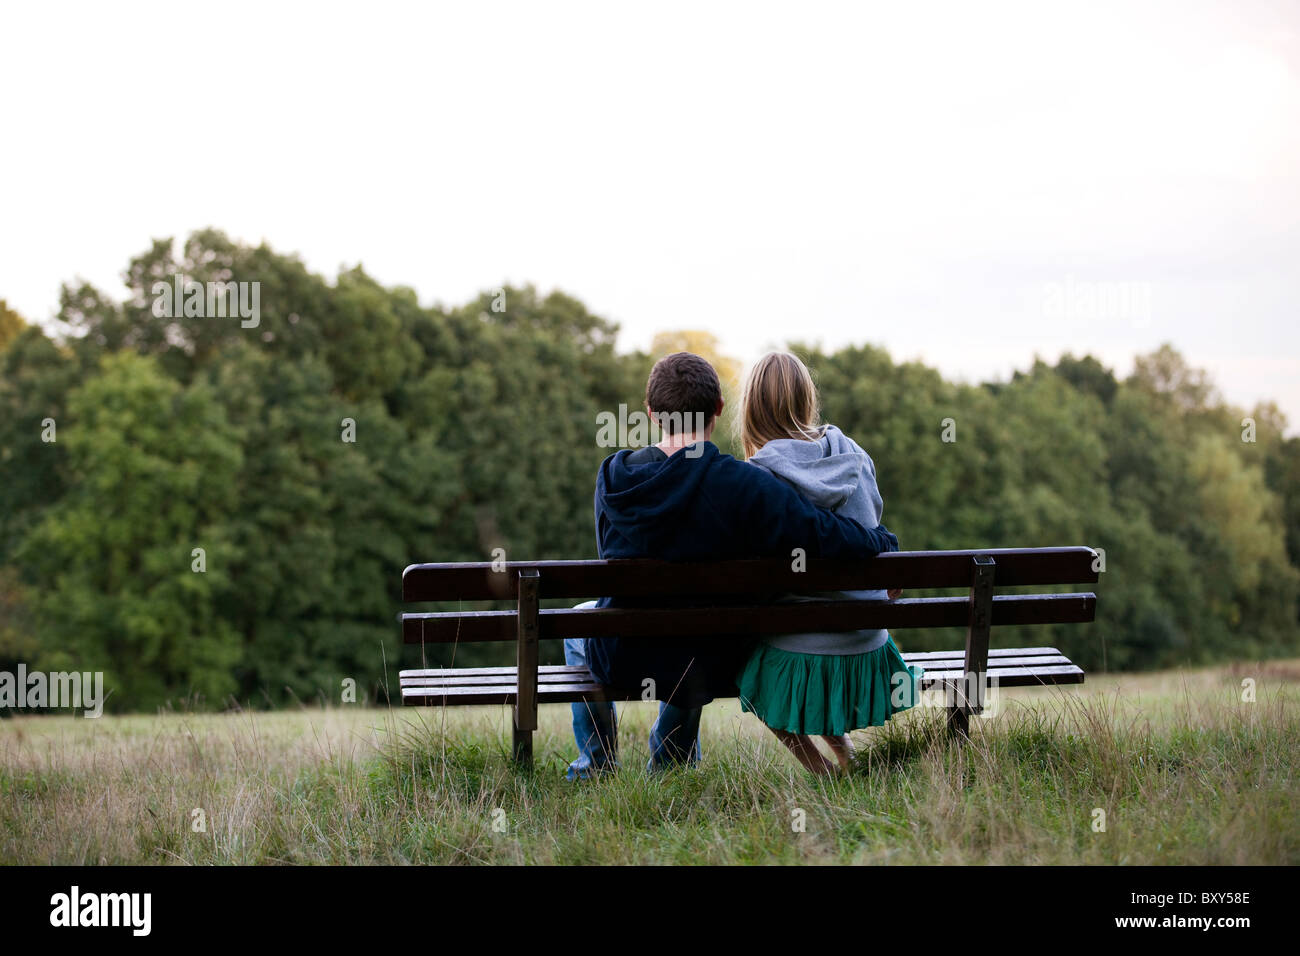 Rear view of young couple on a park bench - Stock Image